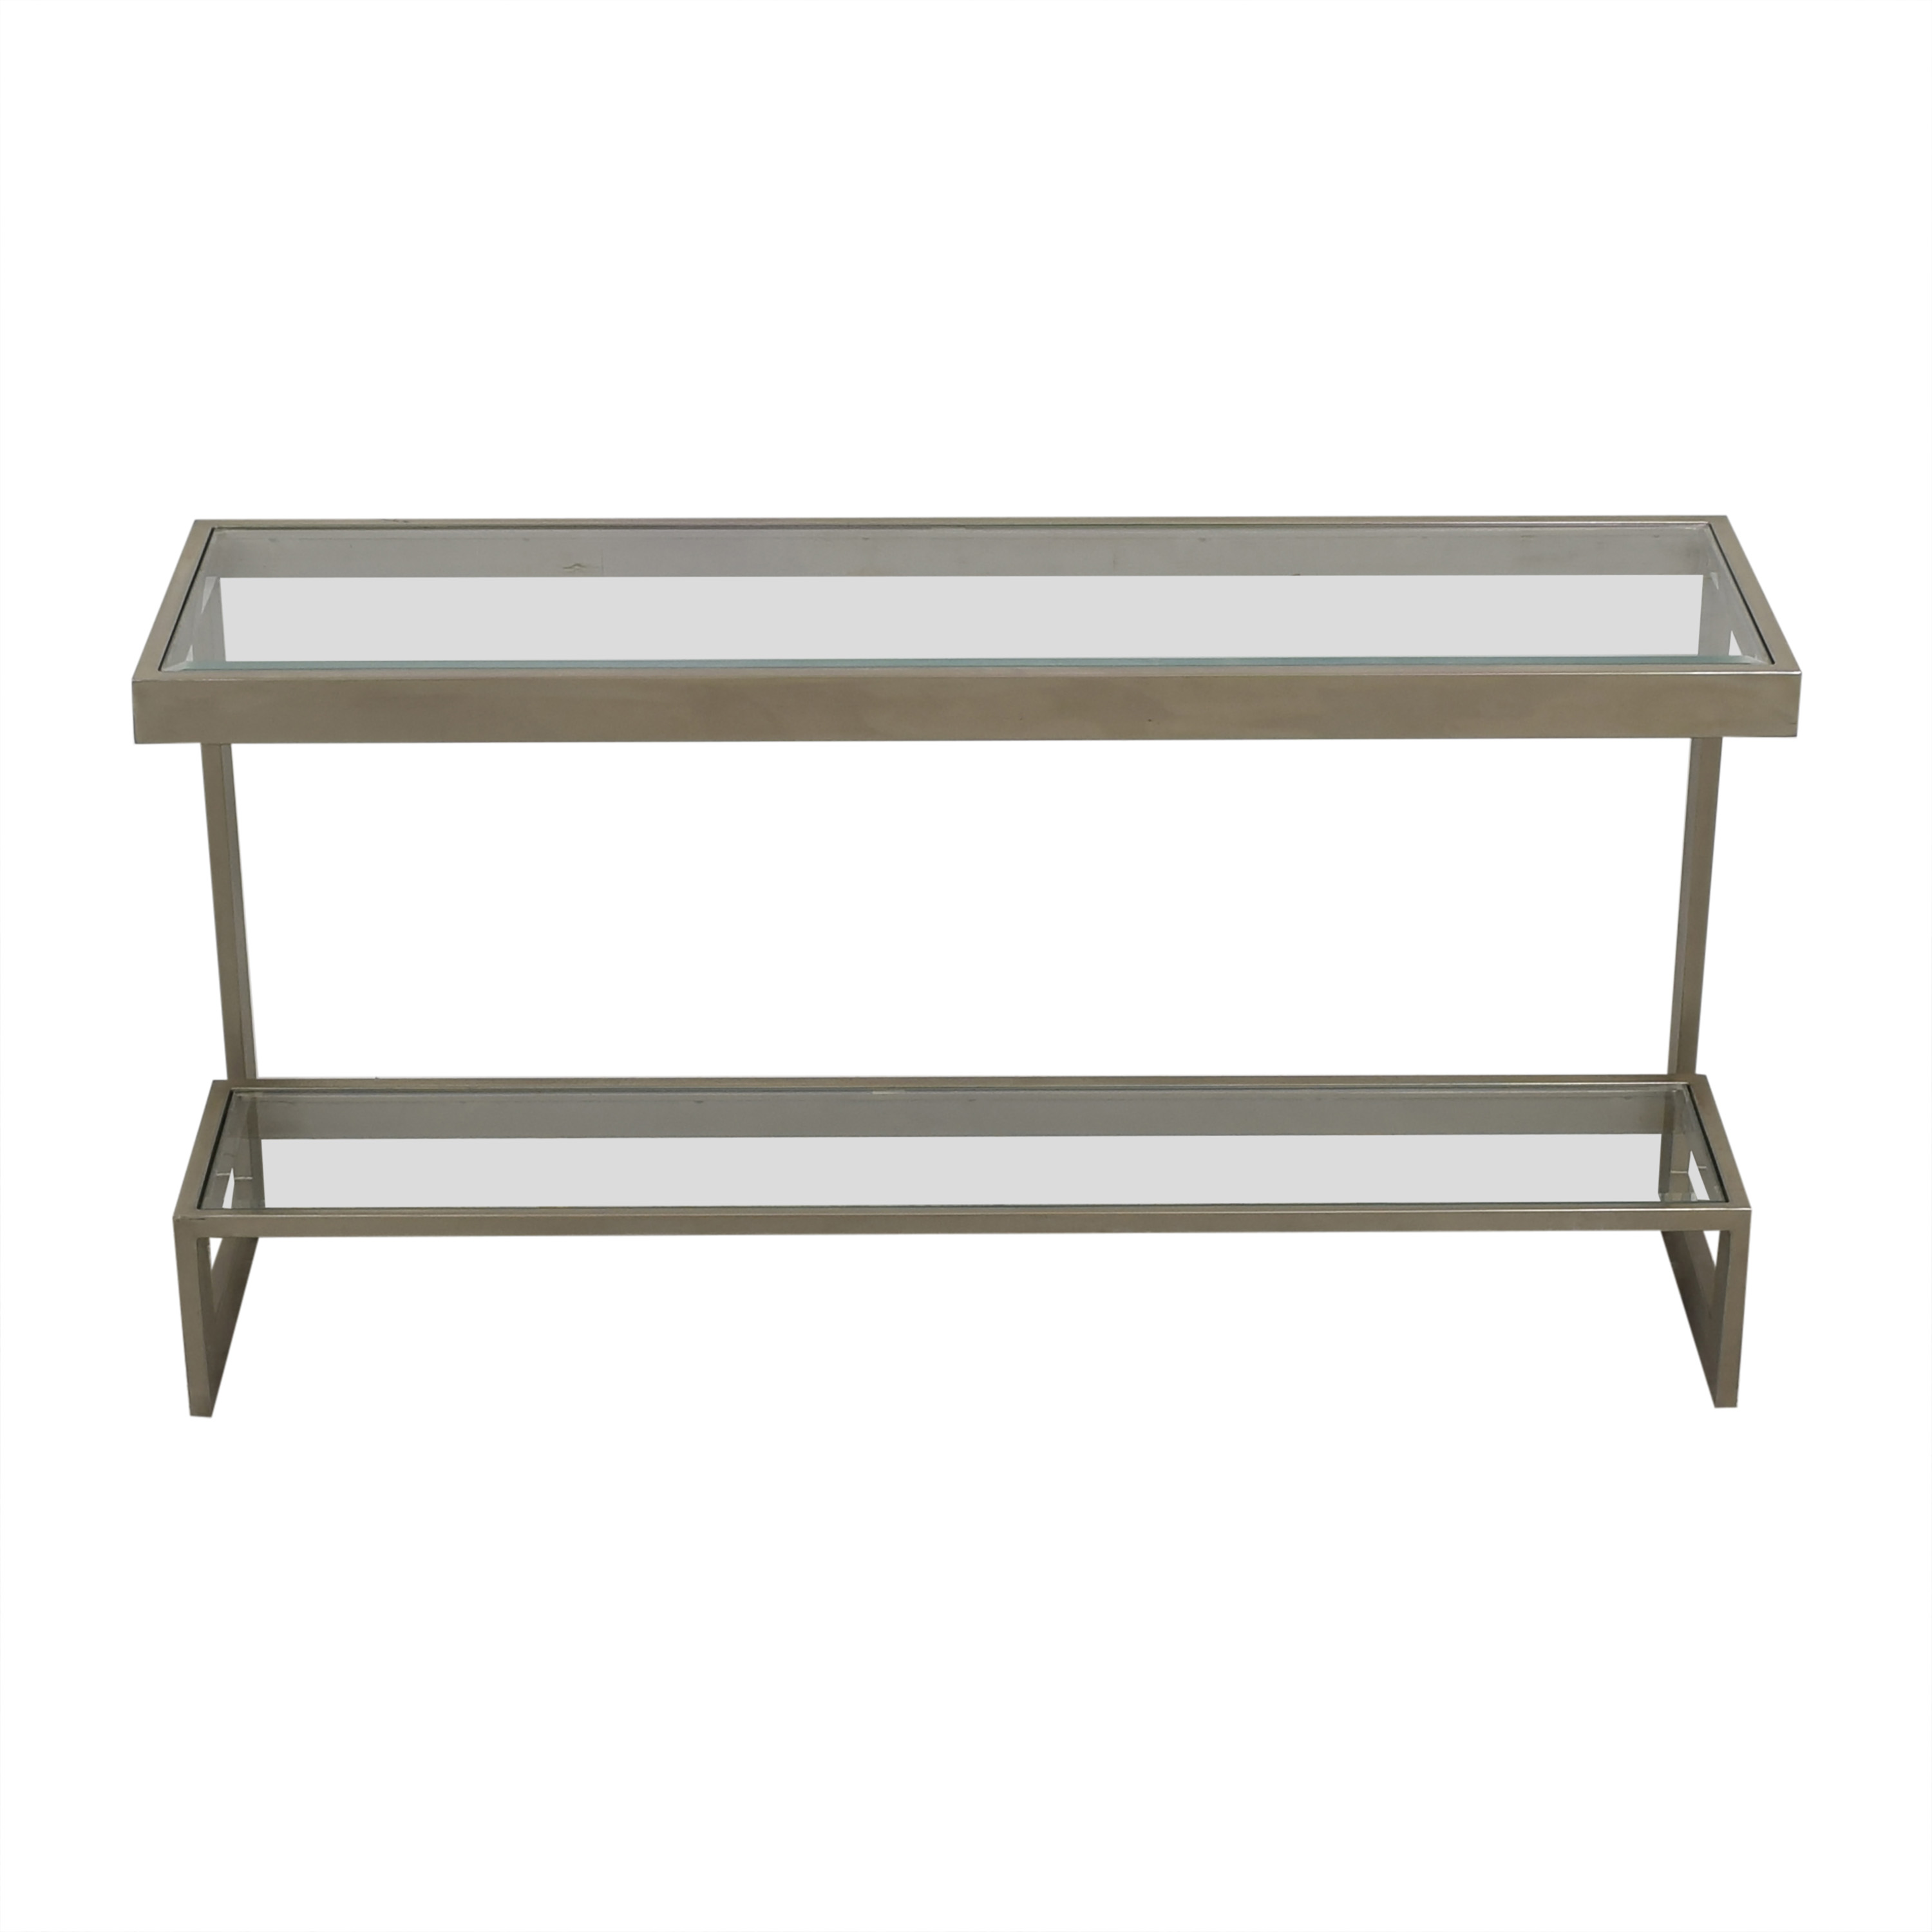 Bloomingdale's Contemporary Console Table / Tables